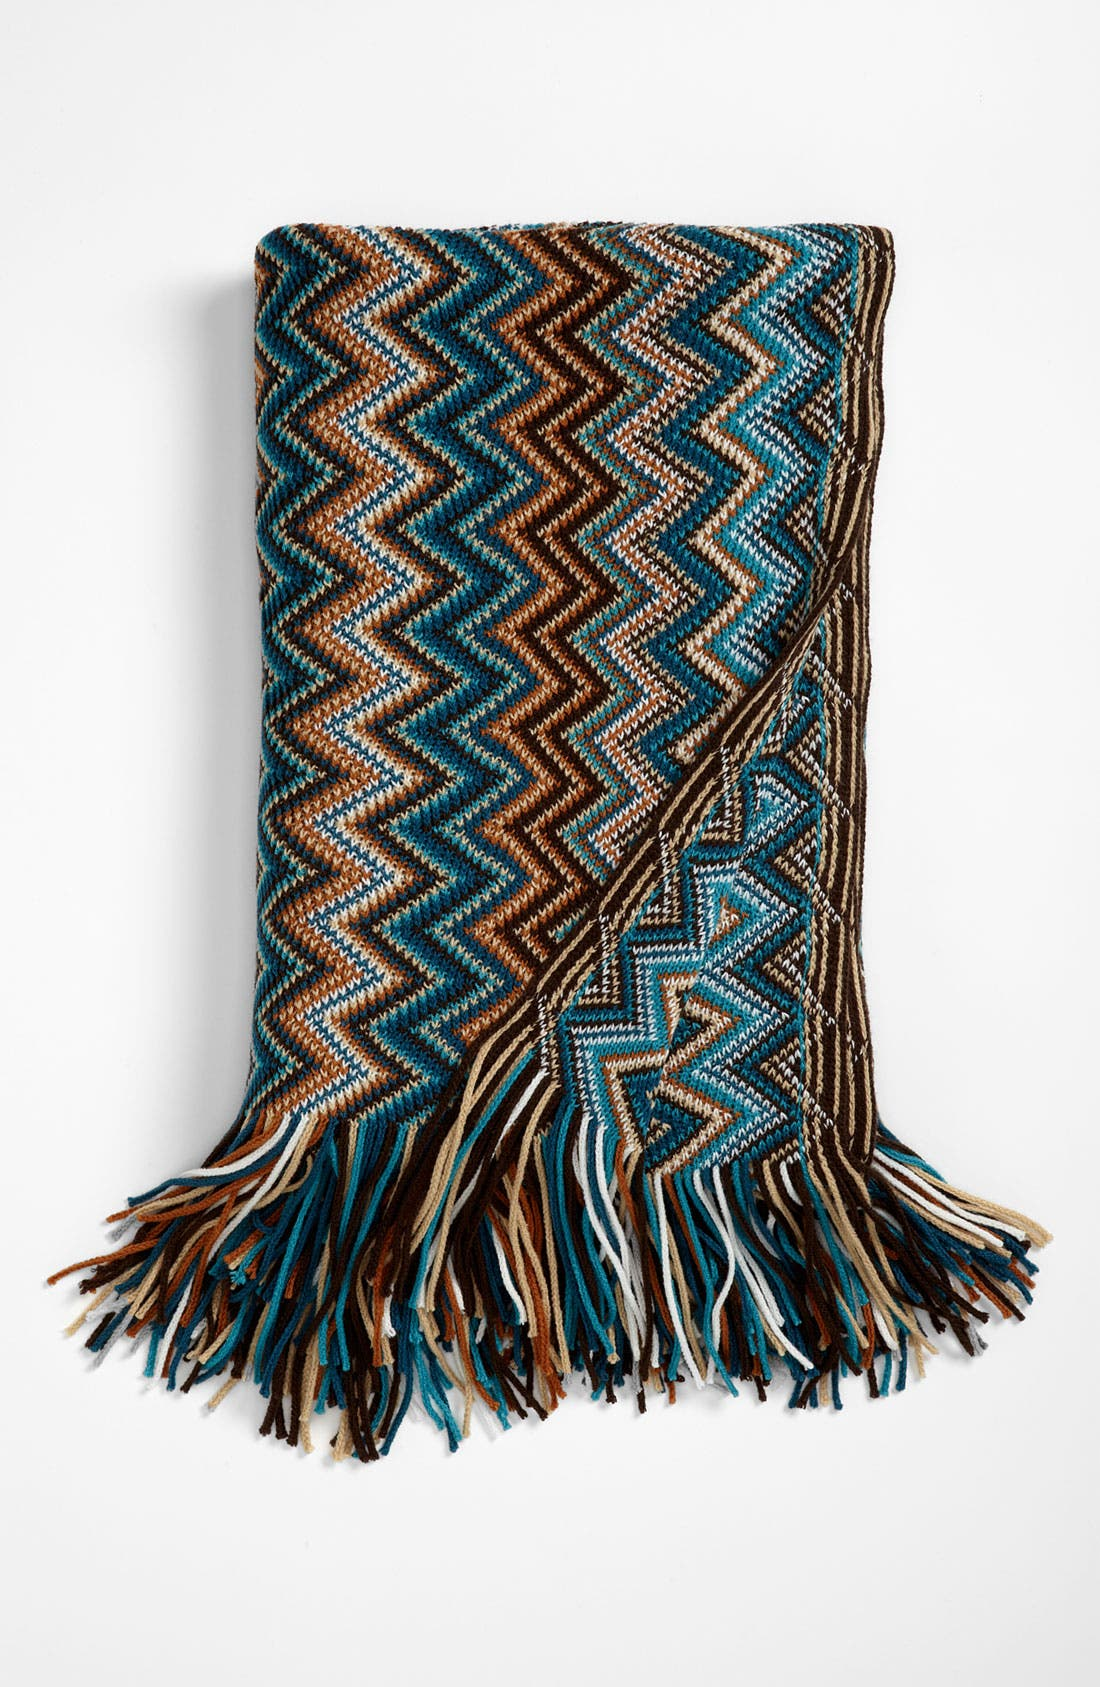 Main Image - Kennebunk Home 'Caitlin' Chevron Knit Throw